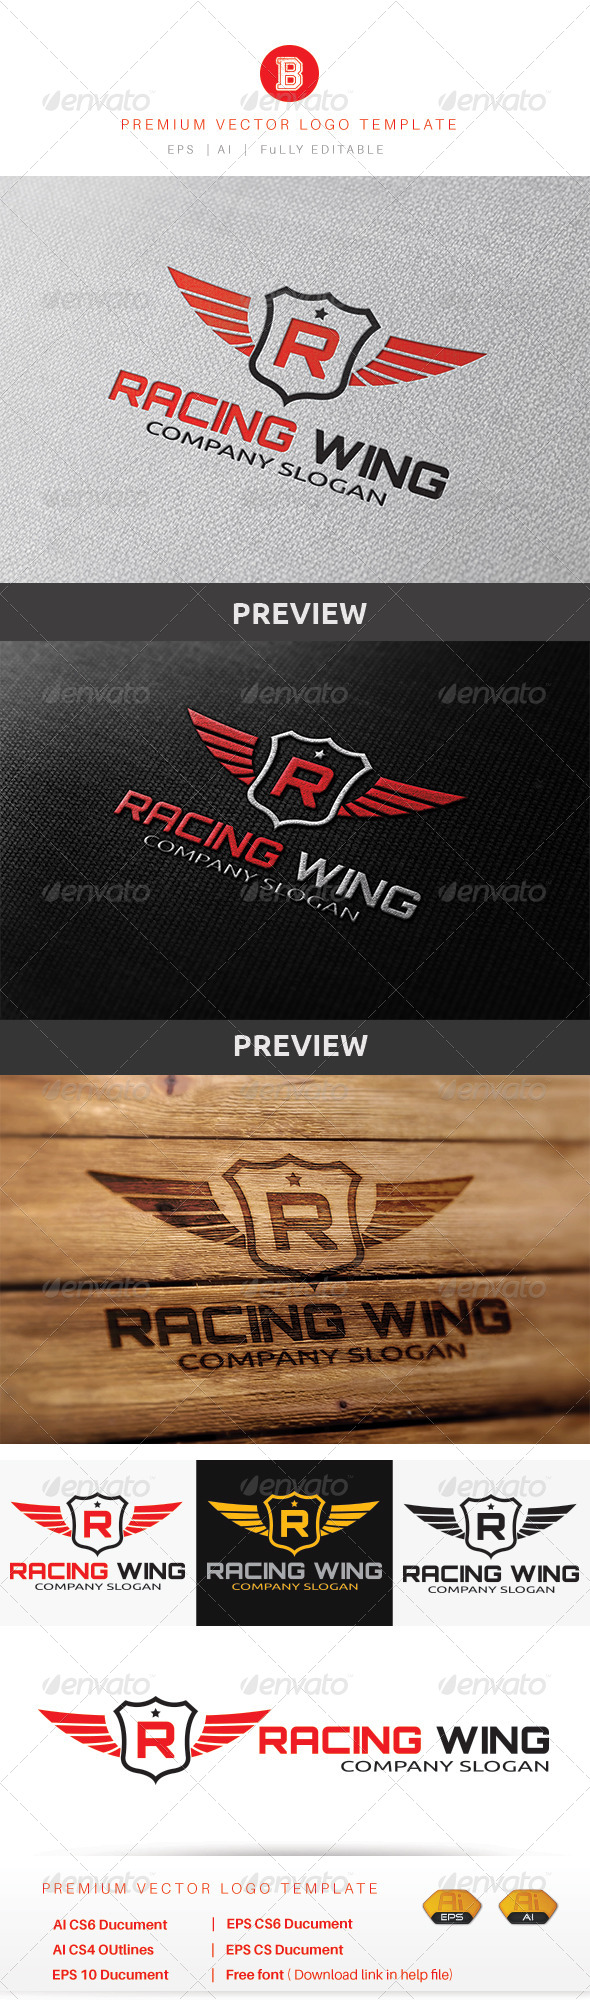 GraphicRiver Racing Wing 8565620